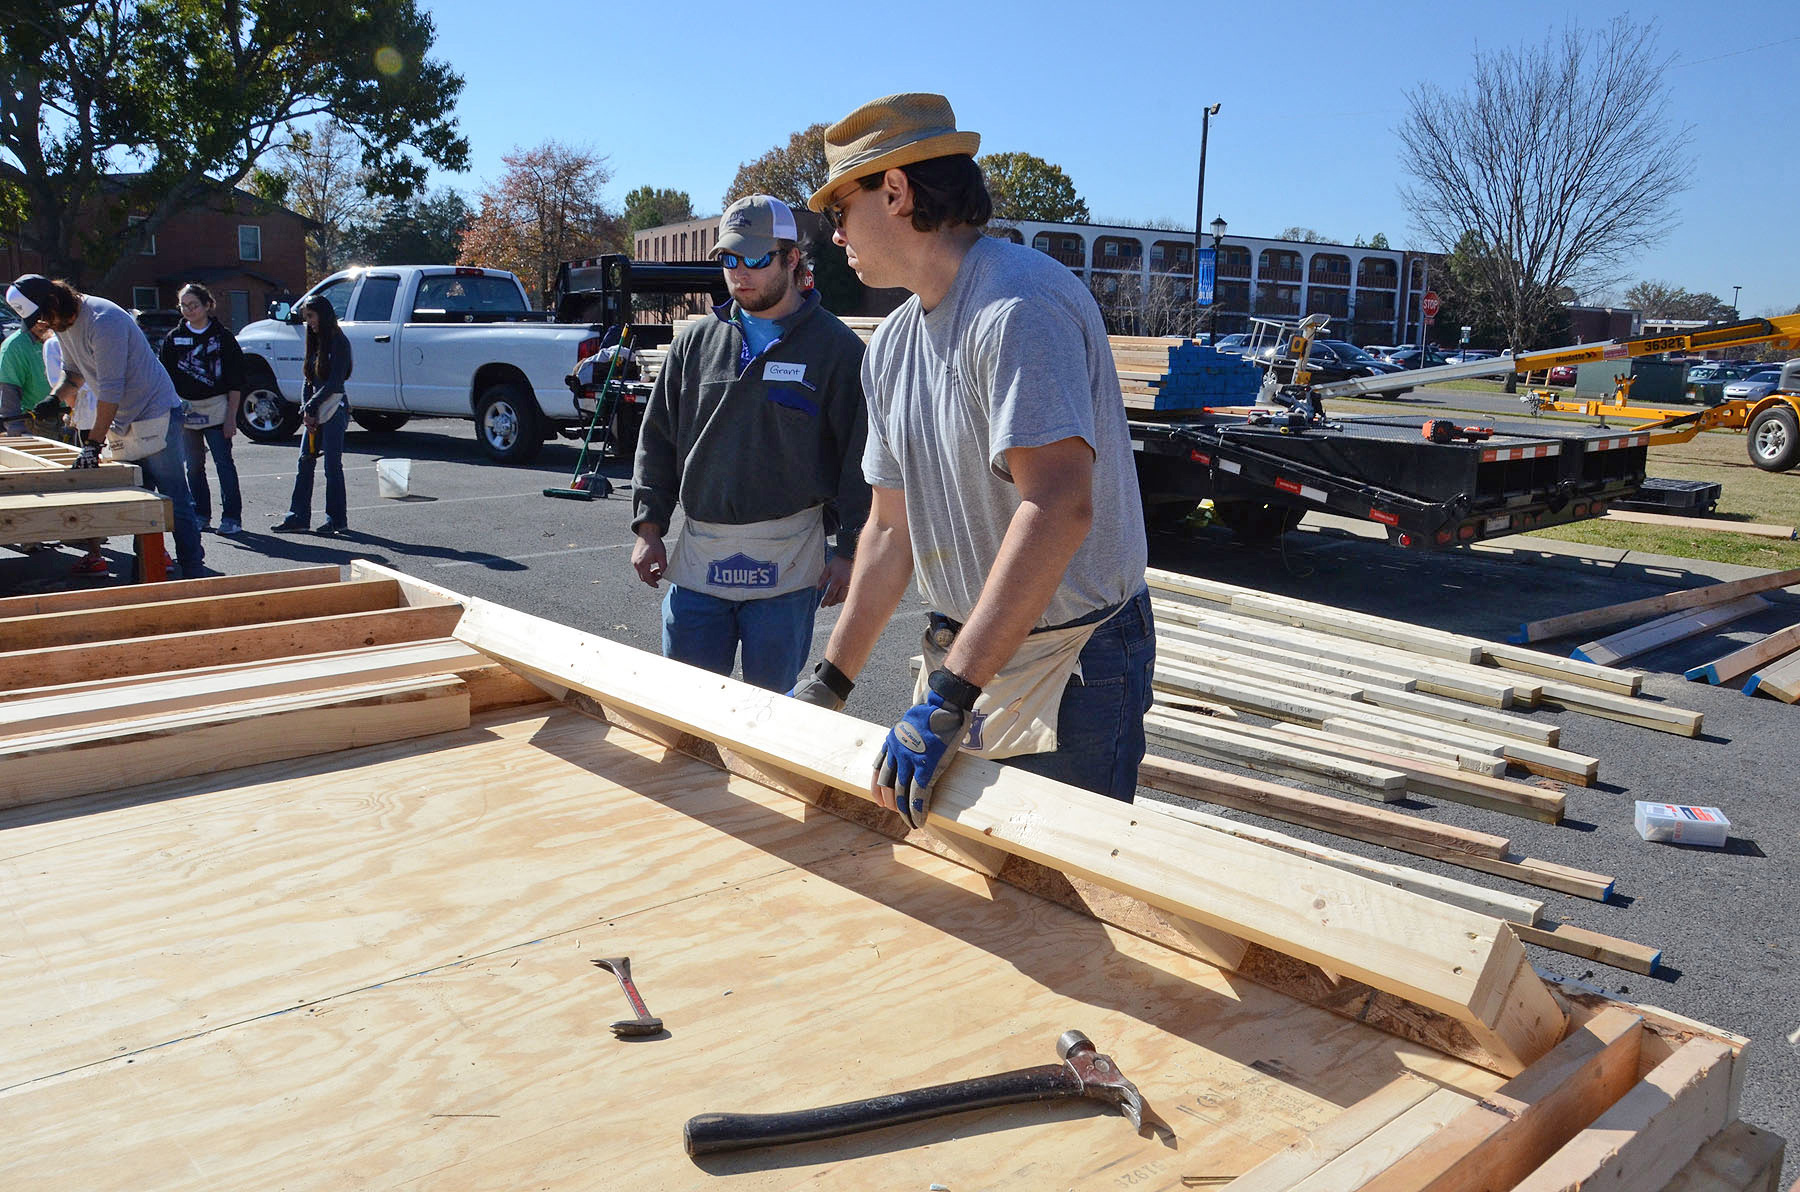 MTSU students, volunteers hammer home altruism with Habitat panel build